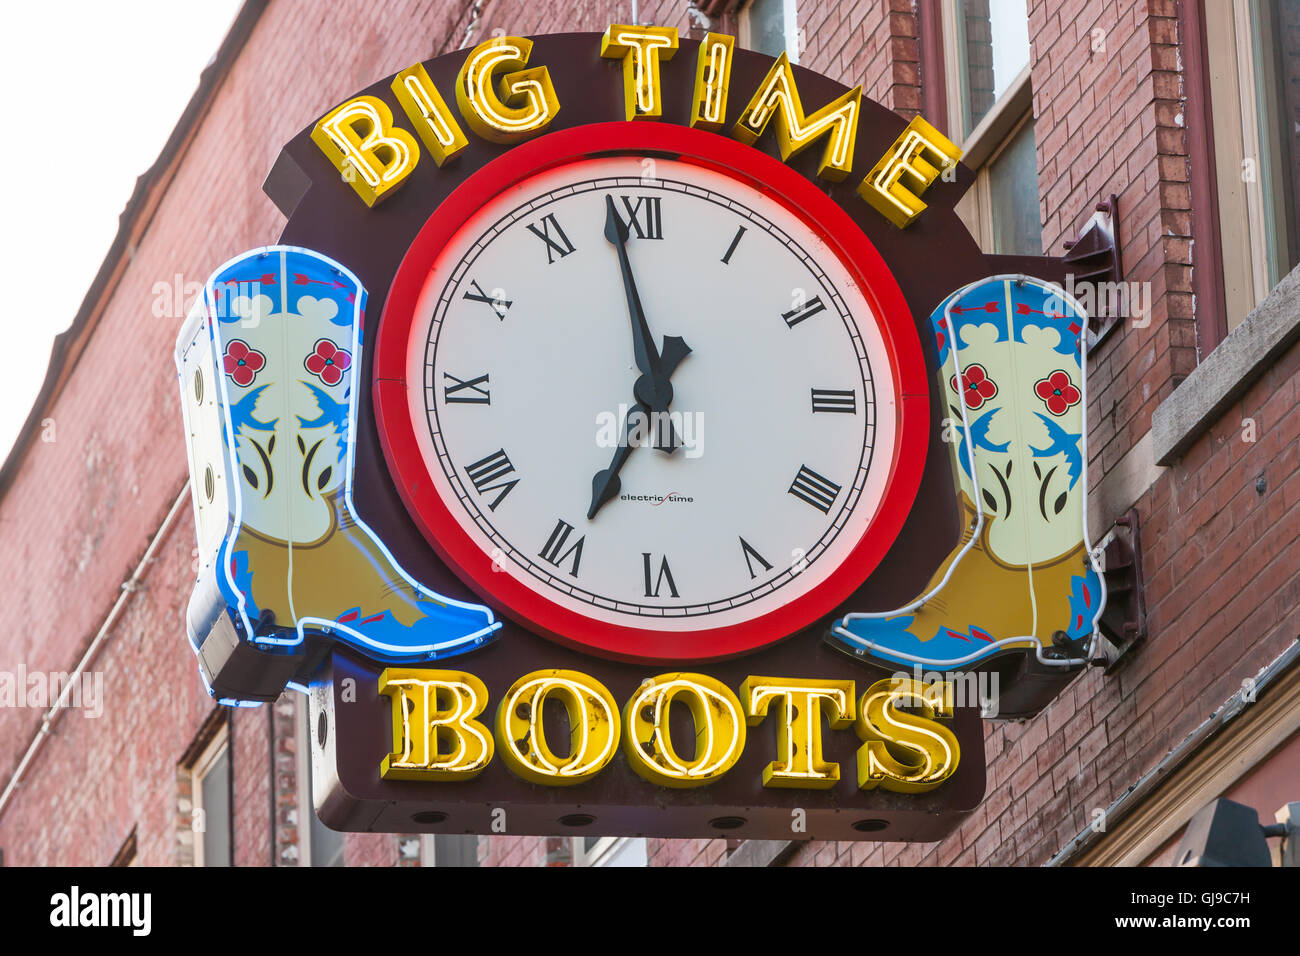 Neon Sign for Big Time Boots store in Nashville, Tennessee. - Stock Image